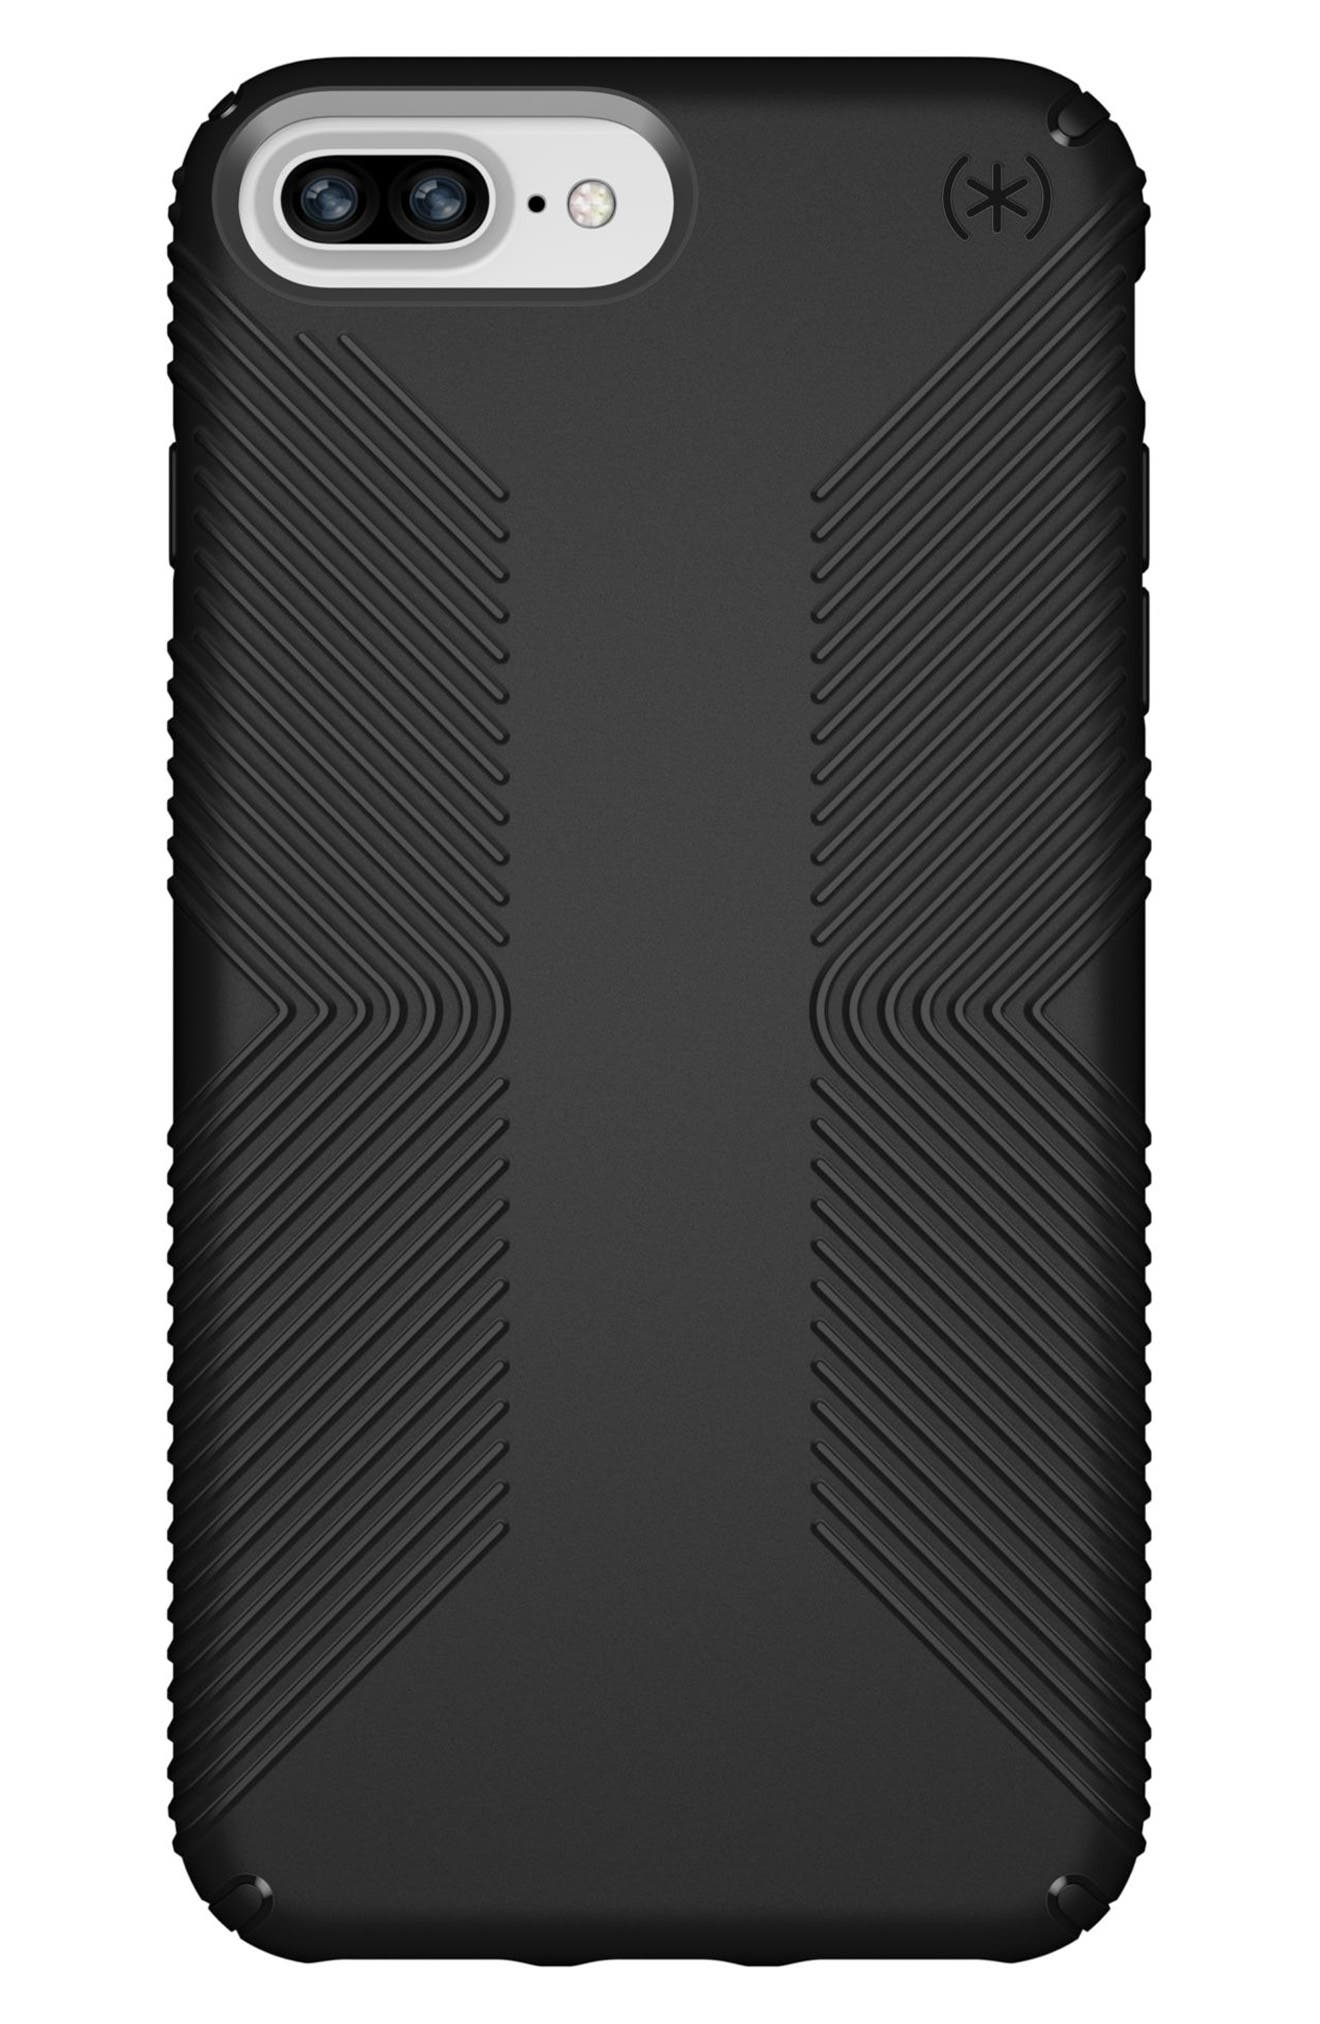 Speck Grip iPhone 6/6s/7/8 Plus Case